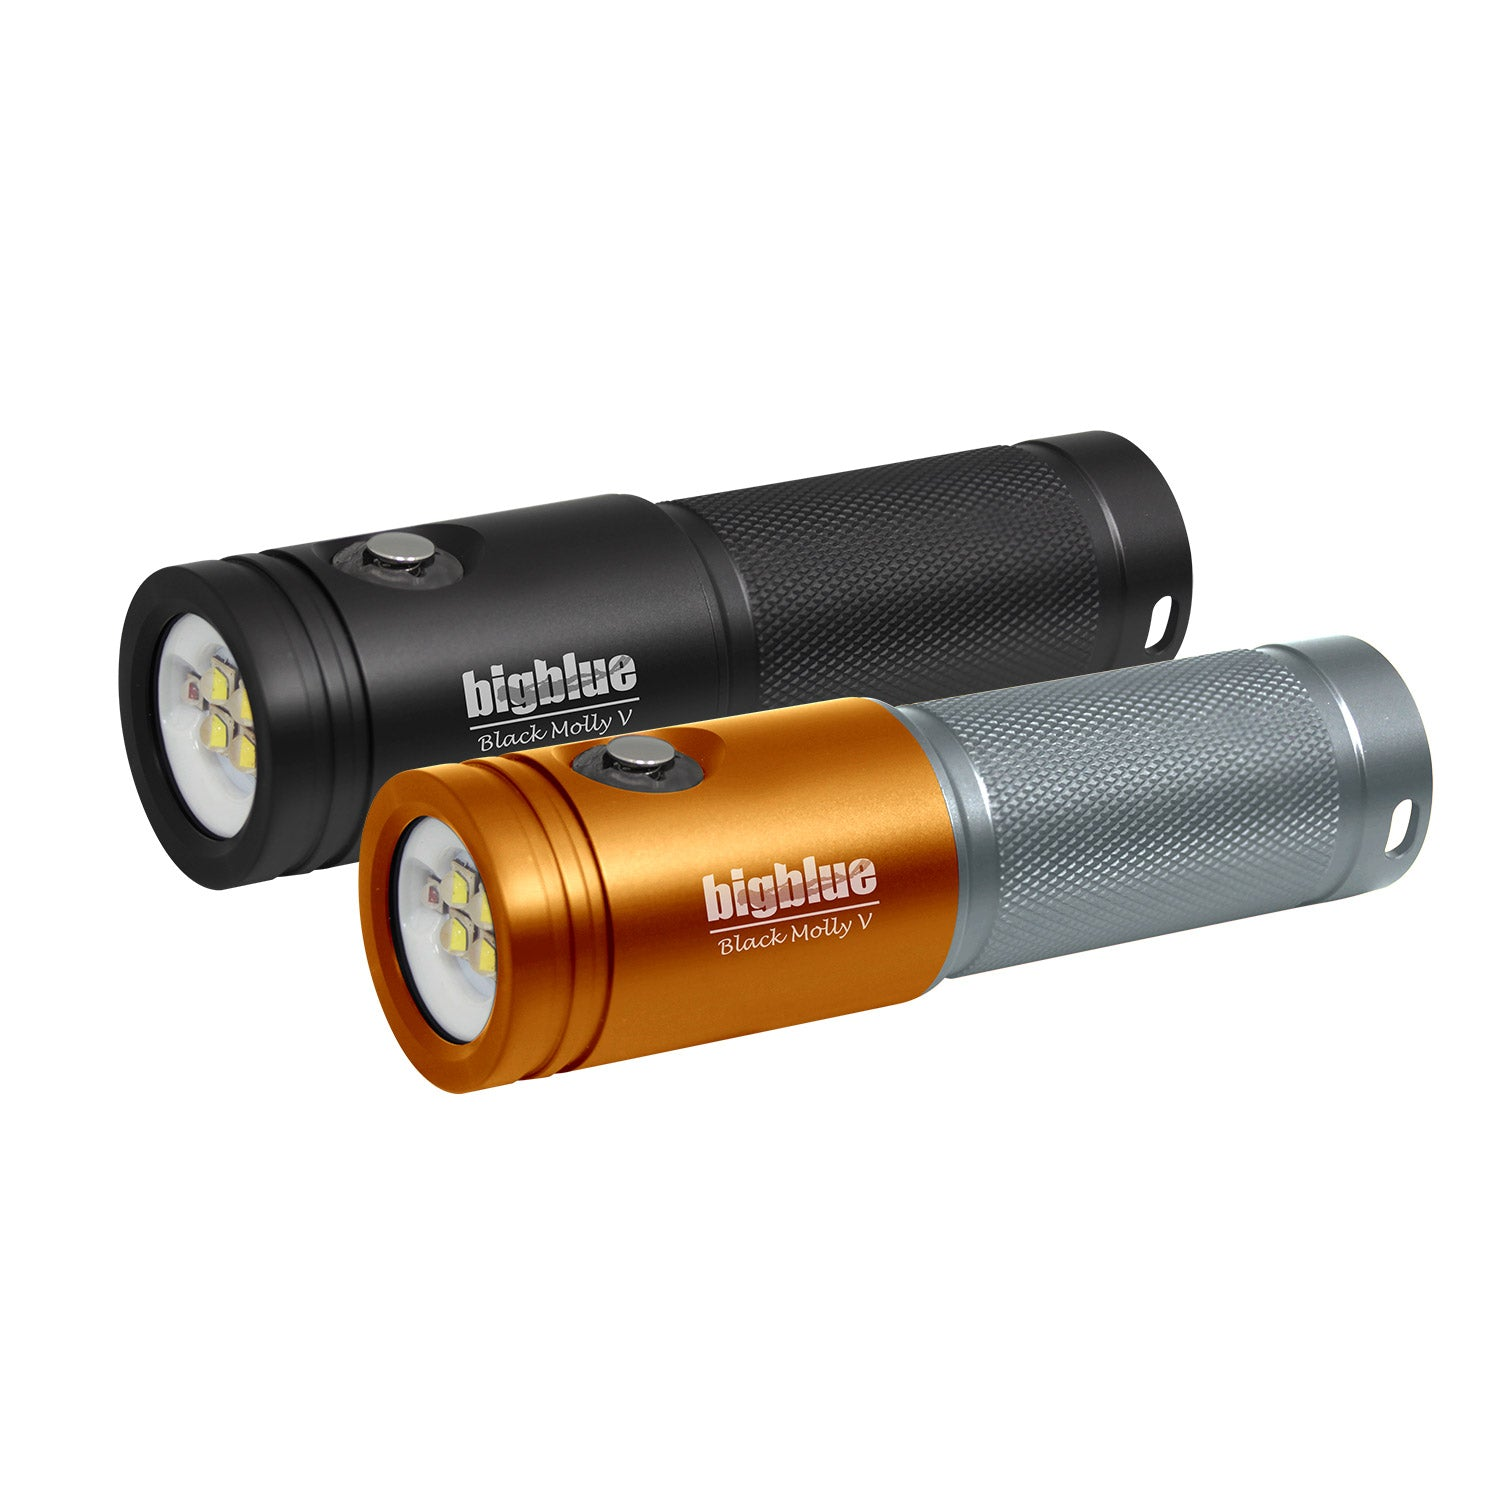 bigblue Black Molly V 2600-Lumen Video Light - AL2600XWP-II